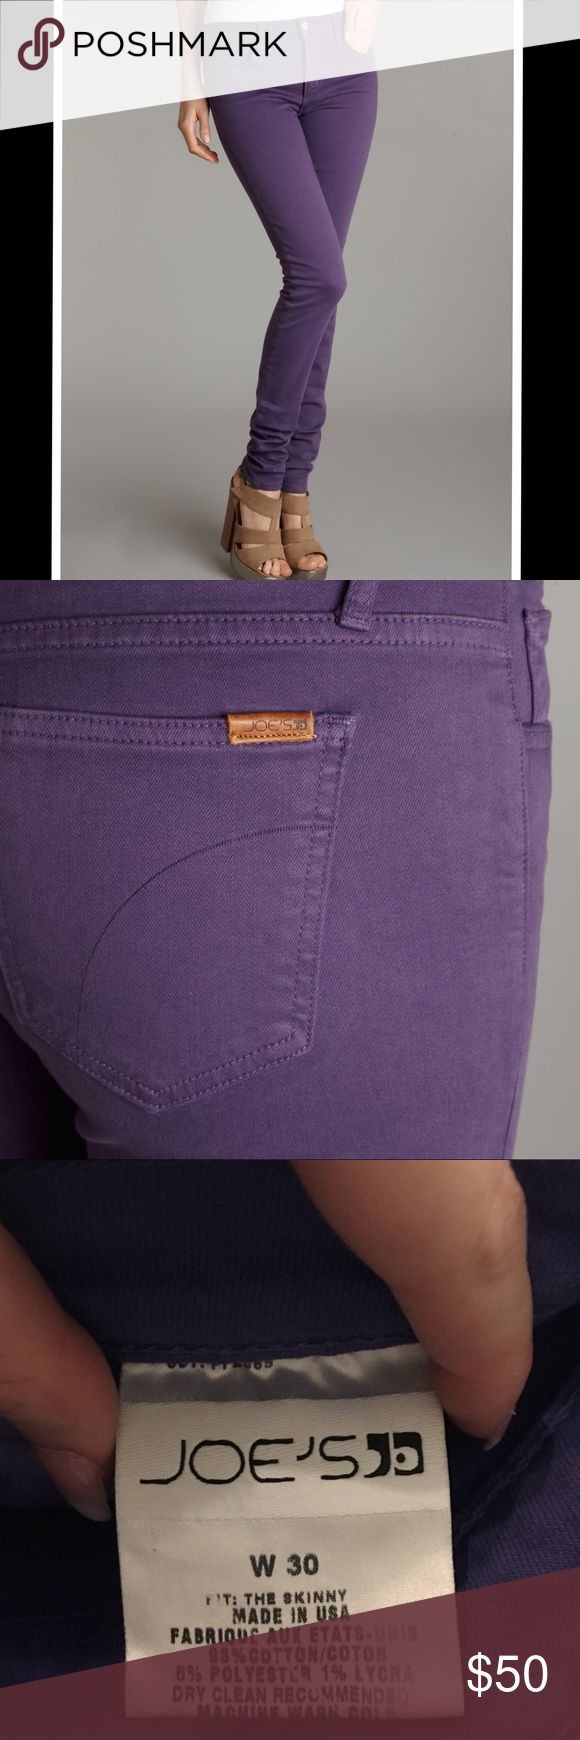 Joe's Purple Skinny Jeans Beautiful Joe's Jeans in a light purple color. I've worn them two or three times. They're in great condition! Joe's Jeans Jeans Skinny